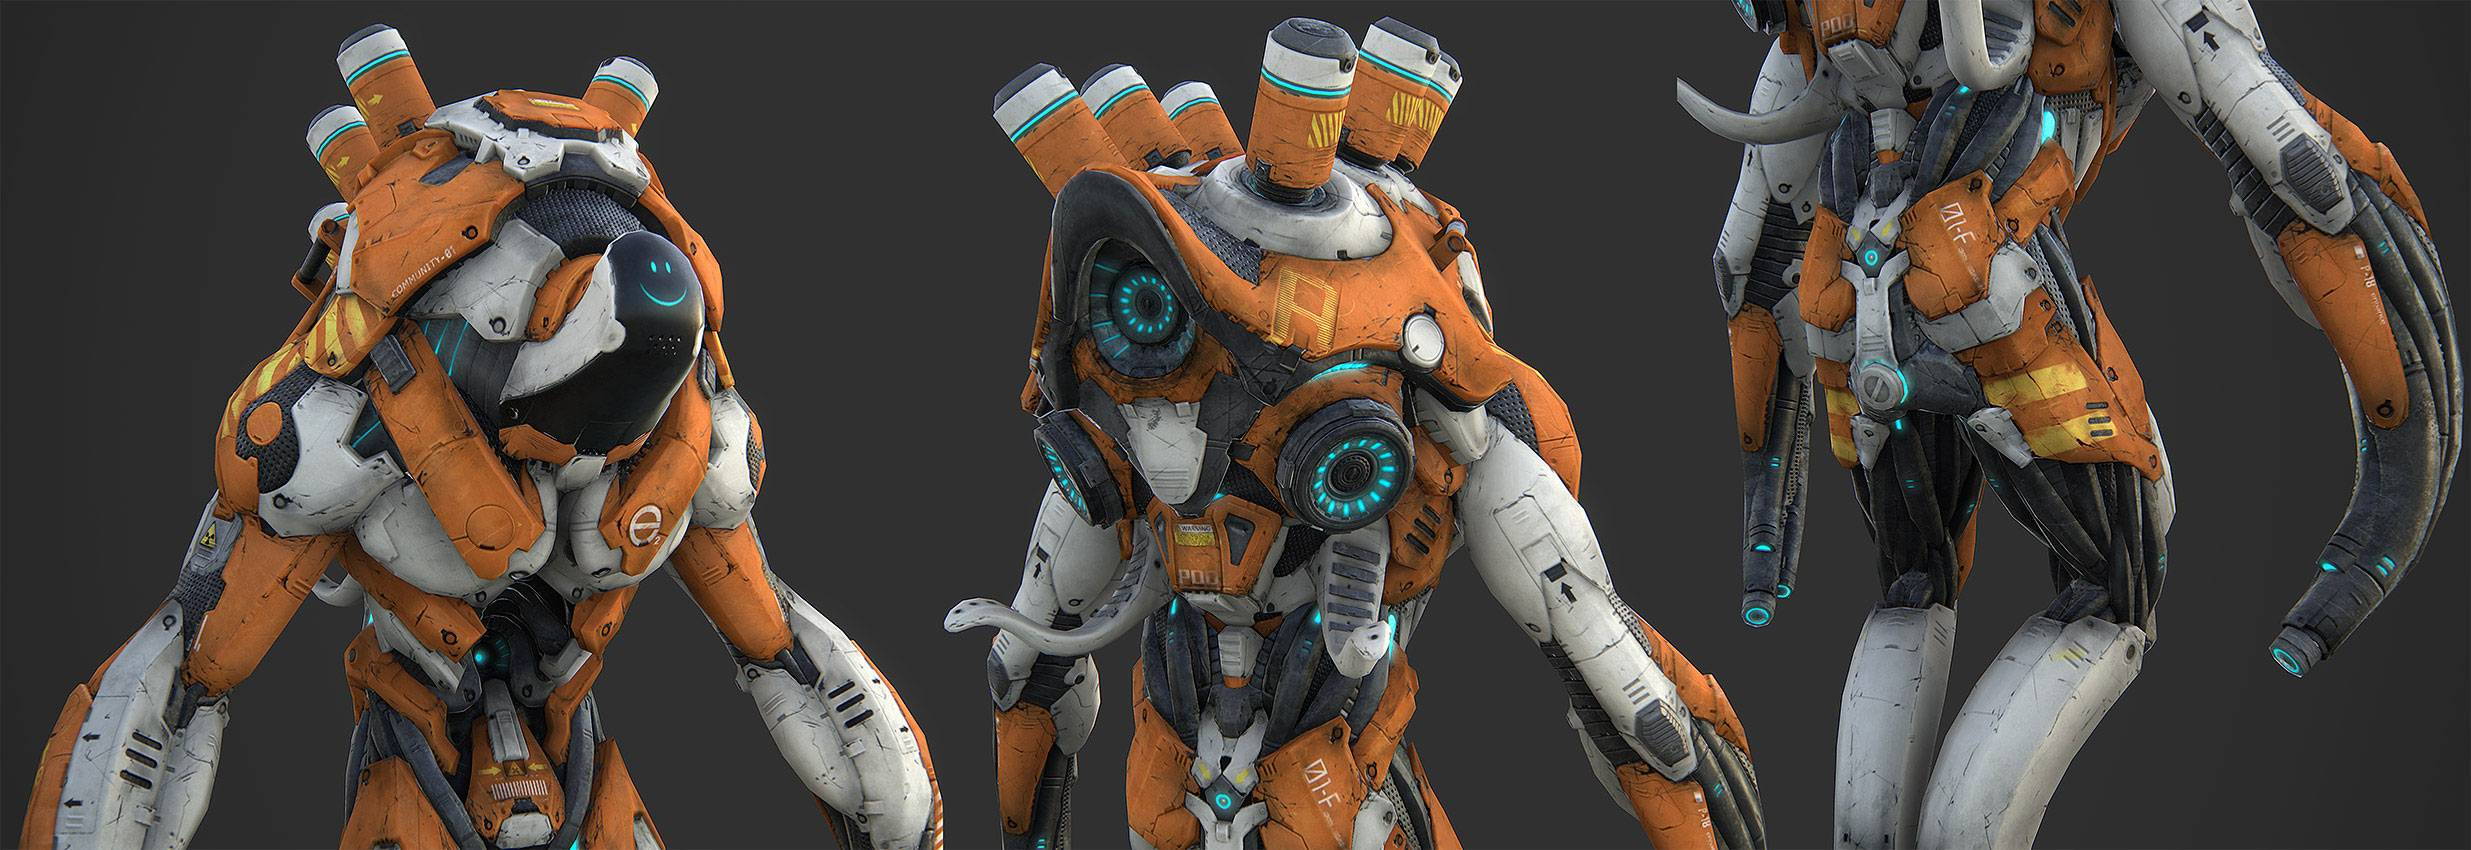 Highly detailed Robots